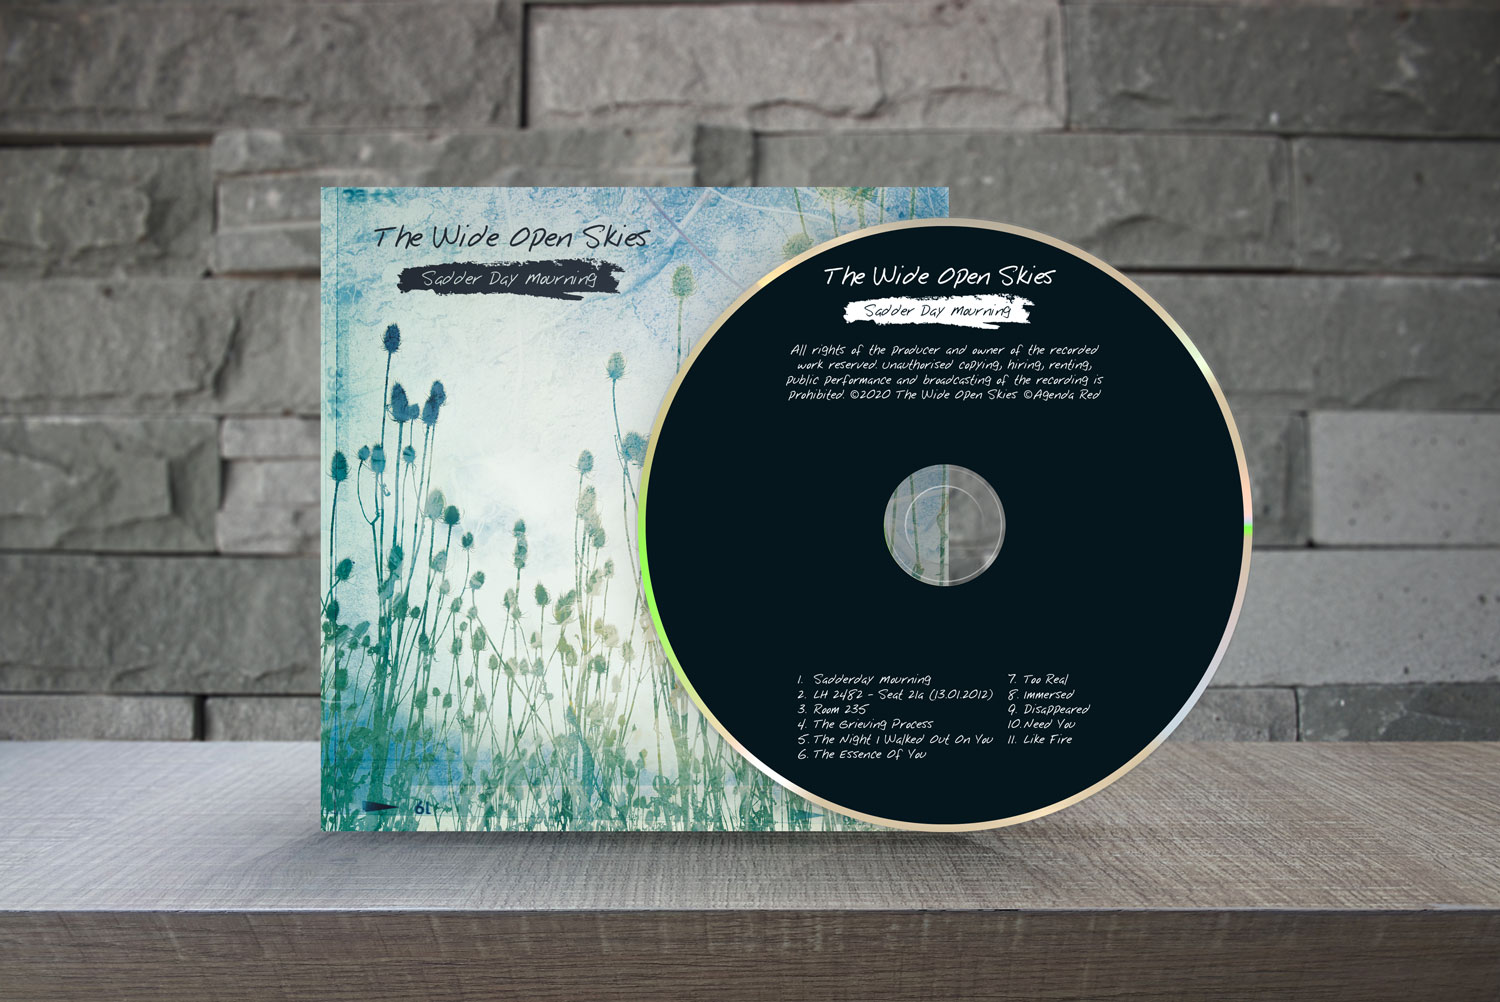 The Wide Open Skies CD album cover design and disc on a table